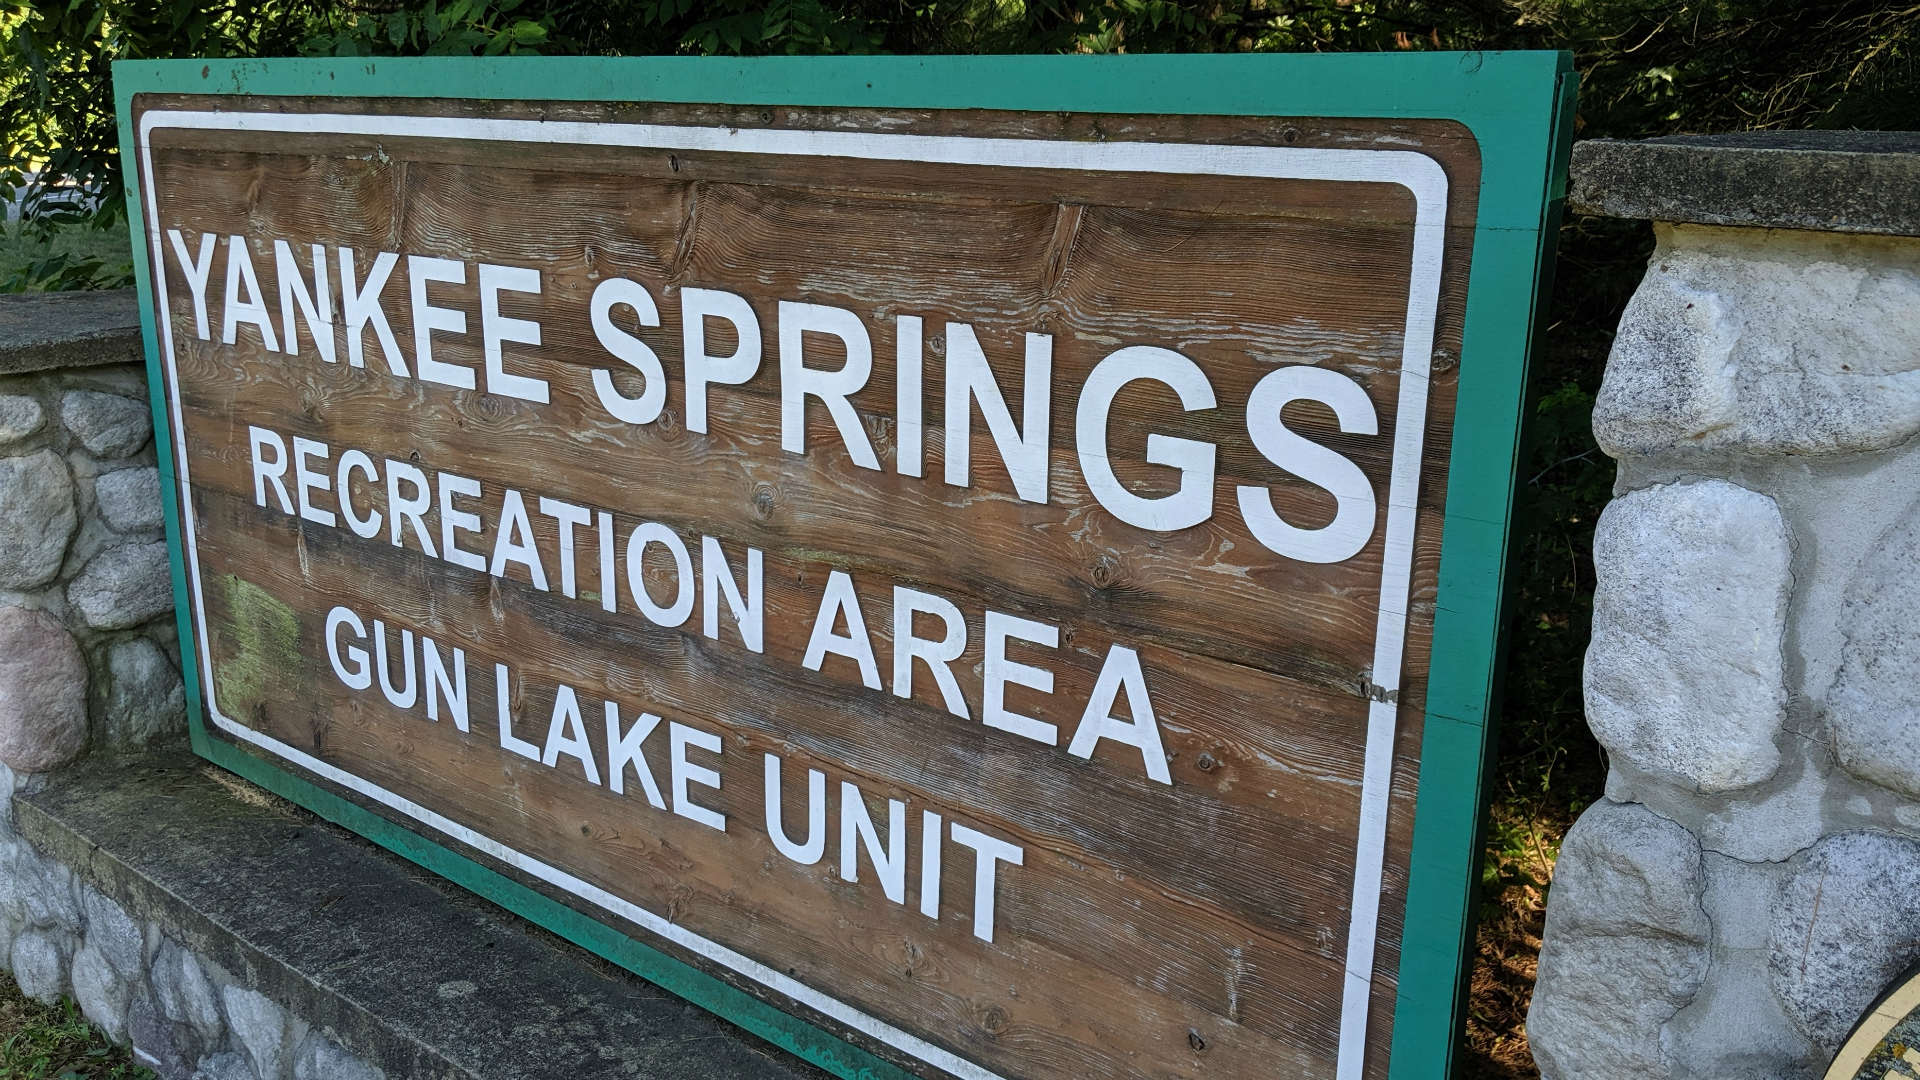 Yankee Springs Recreation Area